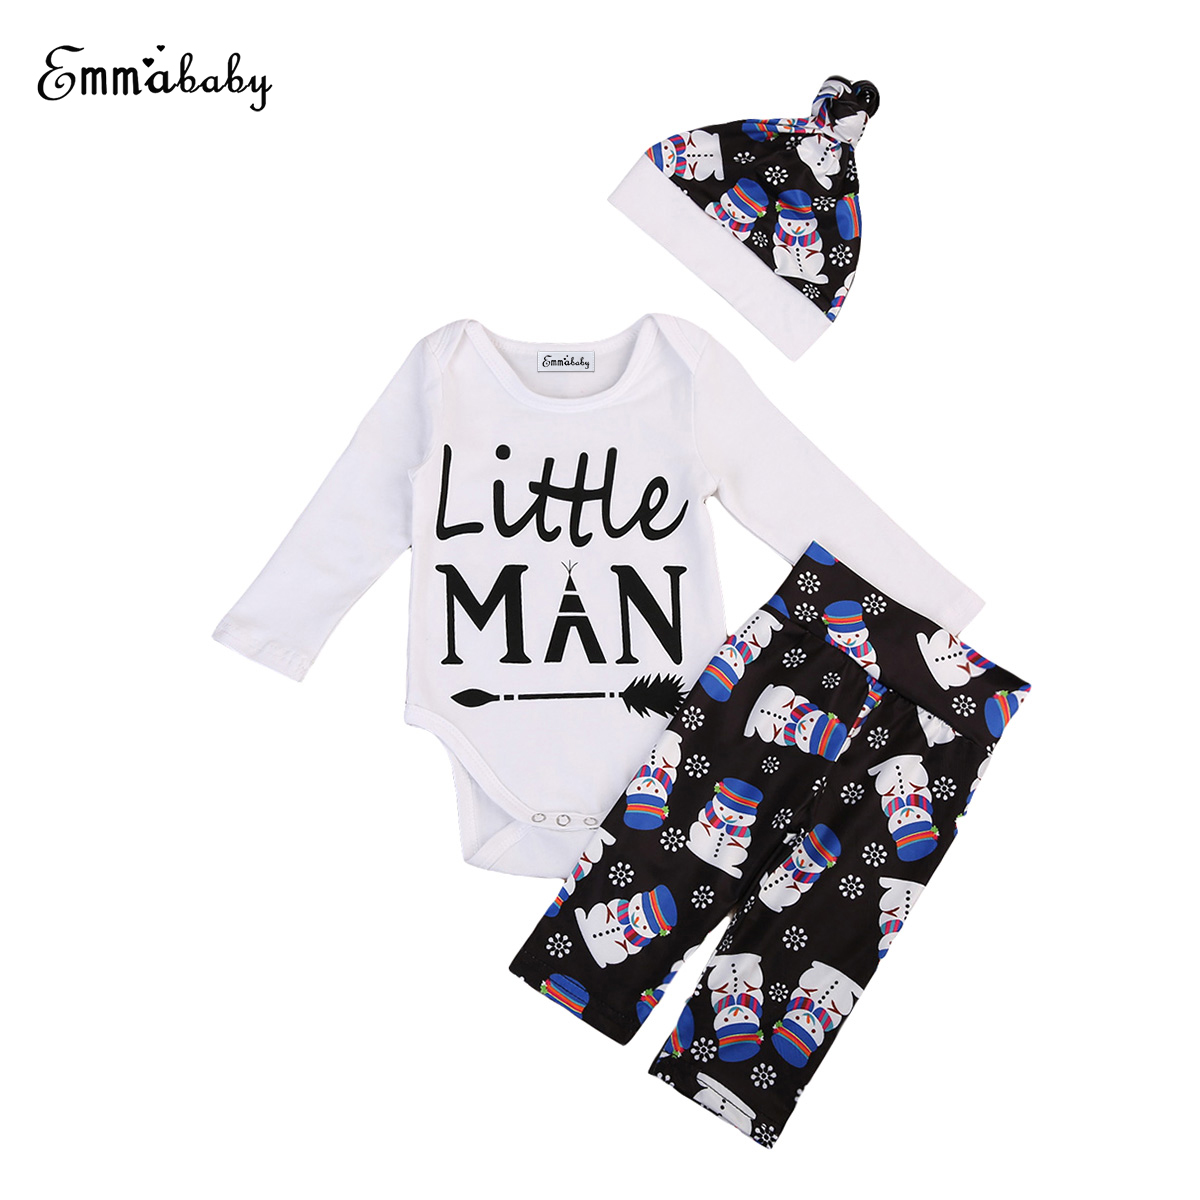 3Pcs Newborn Baby Boy Clothes Long Sleeve Tops Romper+Pants+Hat Outfits Set Clothing Cute